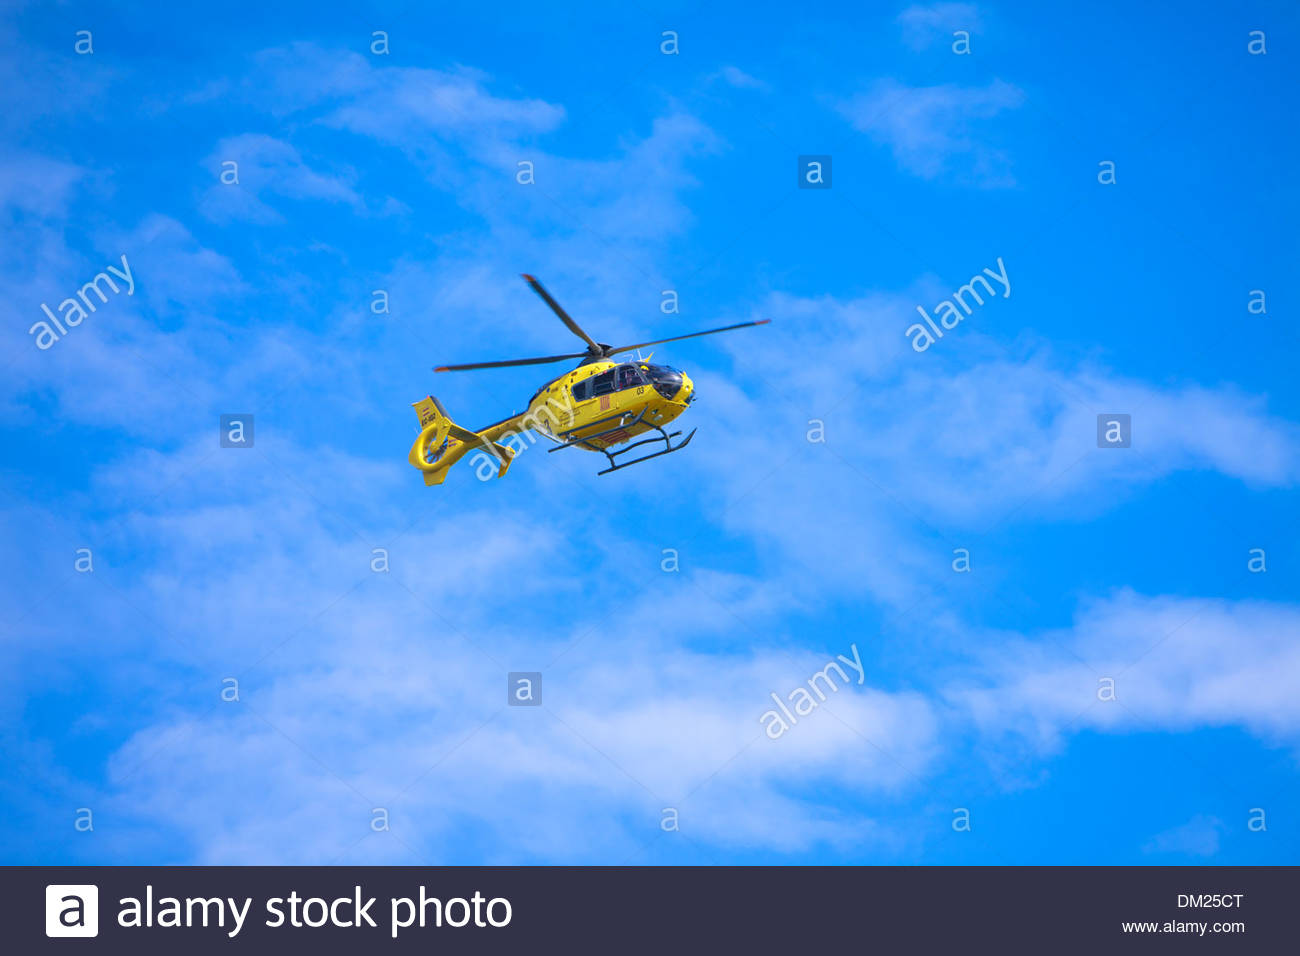 Yellow Catalonian Department of the Interior Helicopter with pilot flying overhead near Girona, Catalonia, Spain - Stock Image